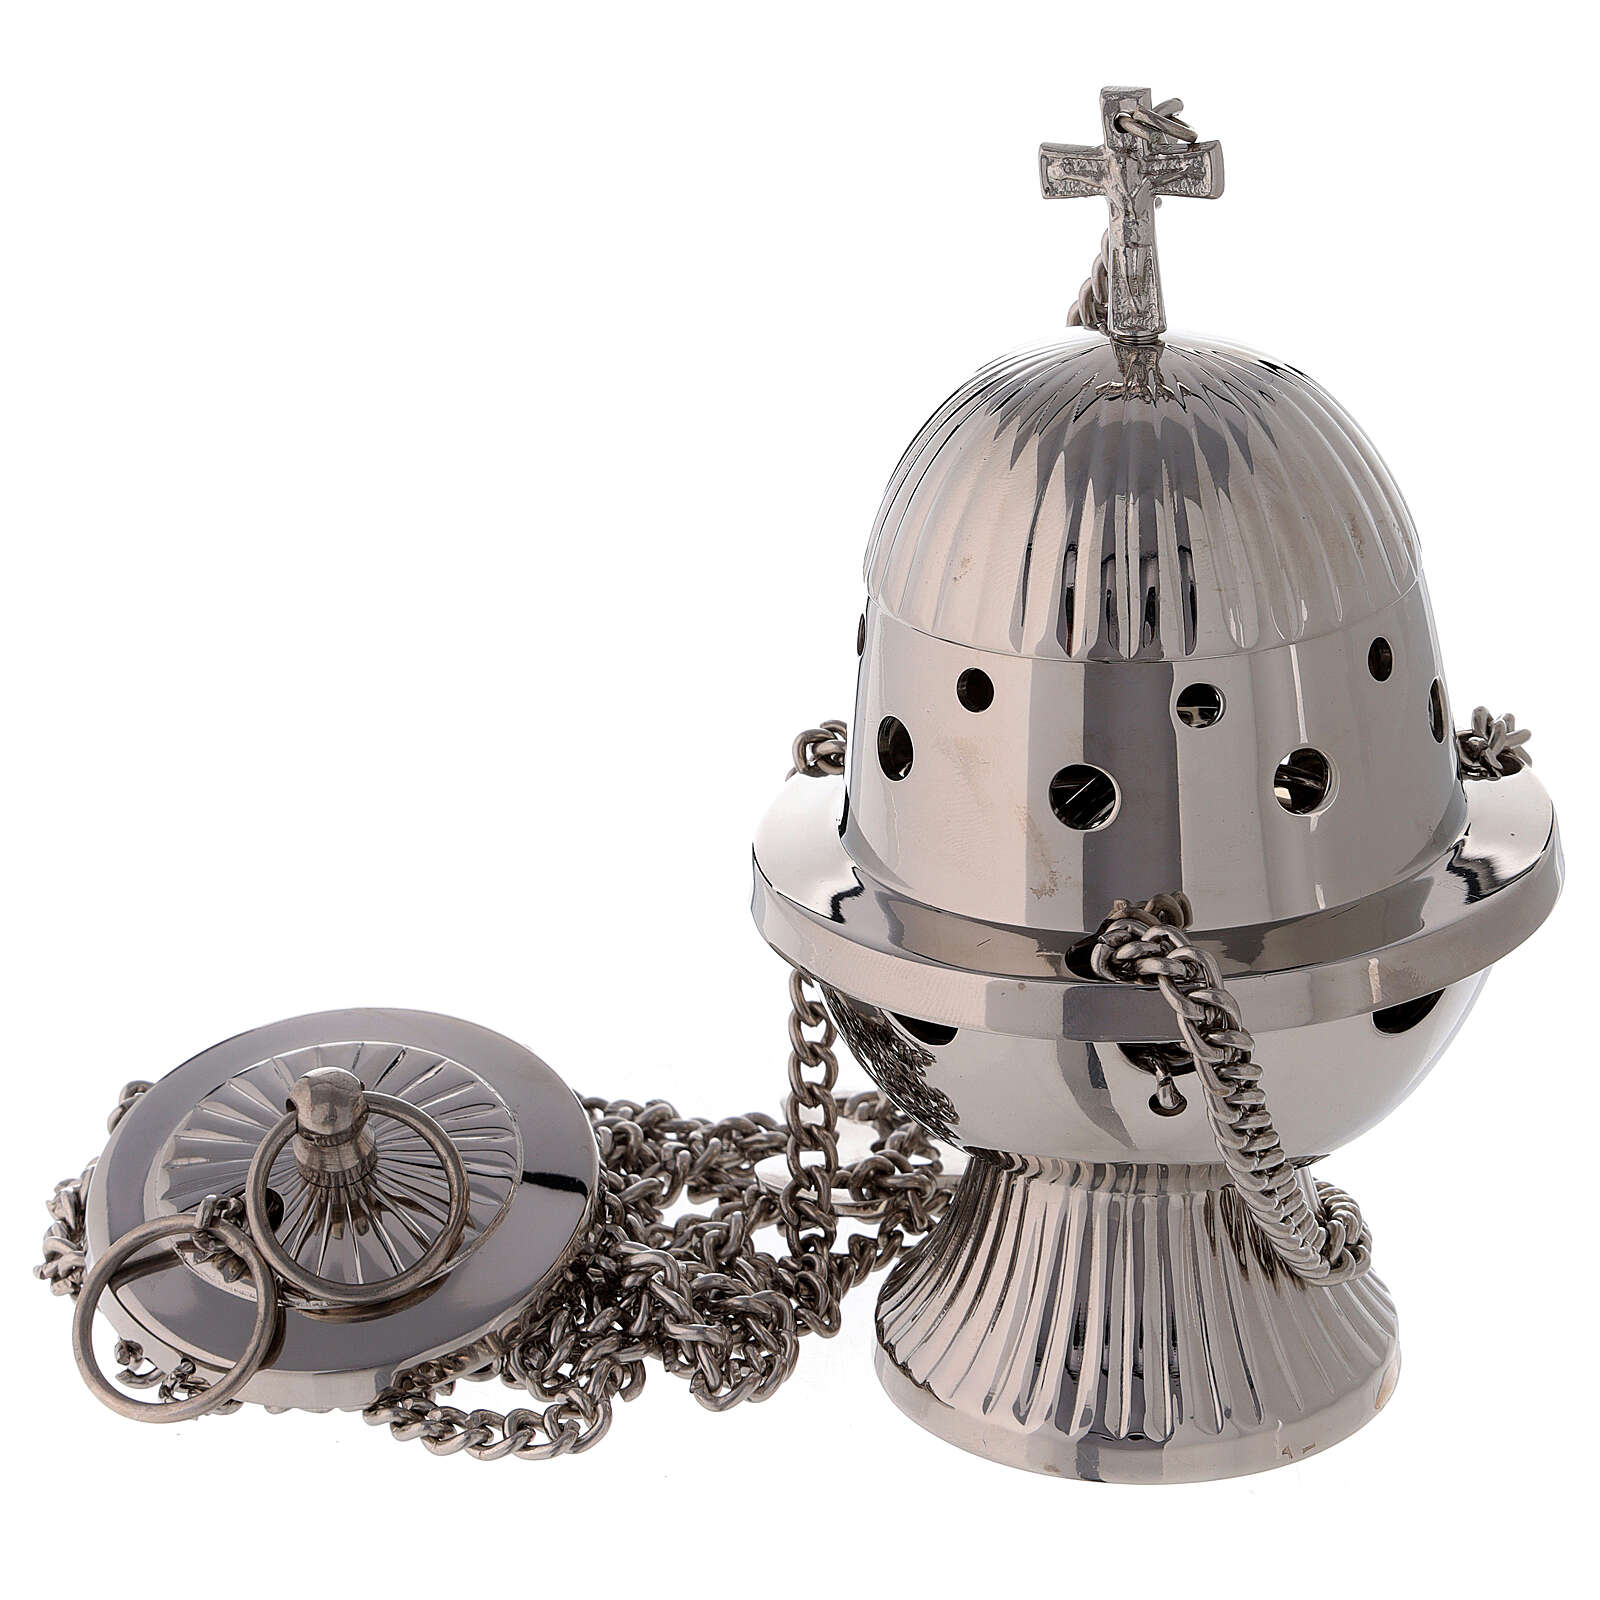 Oval striped thurible 7 in nickel-plated brass 3